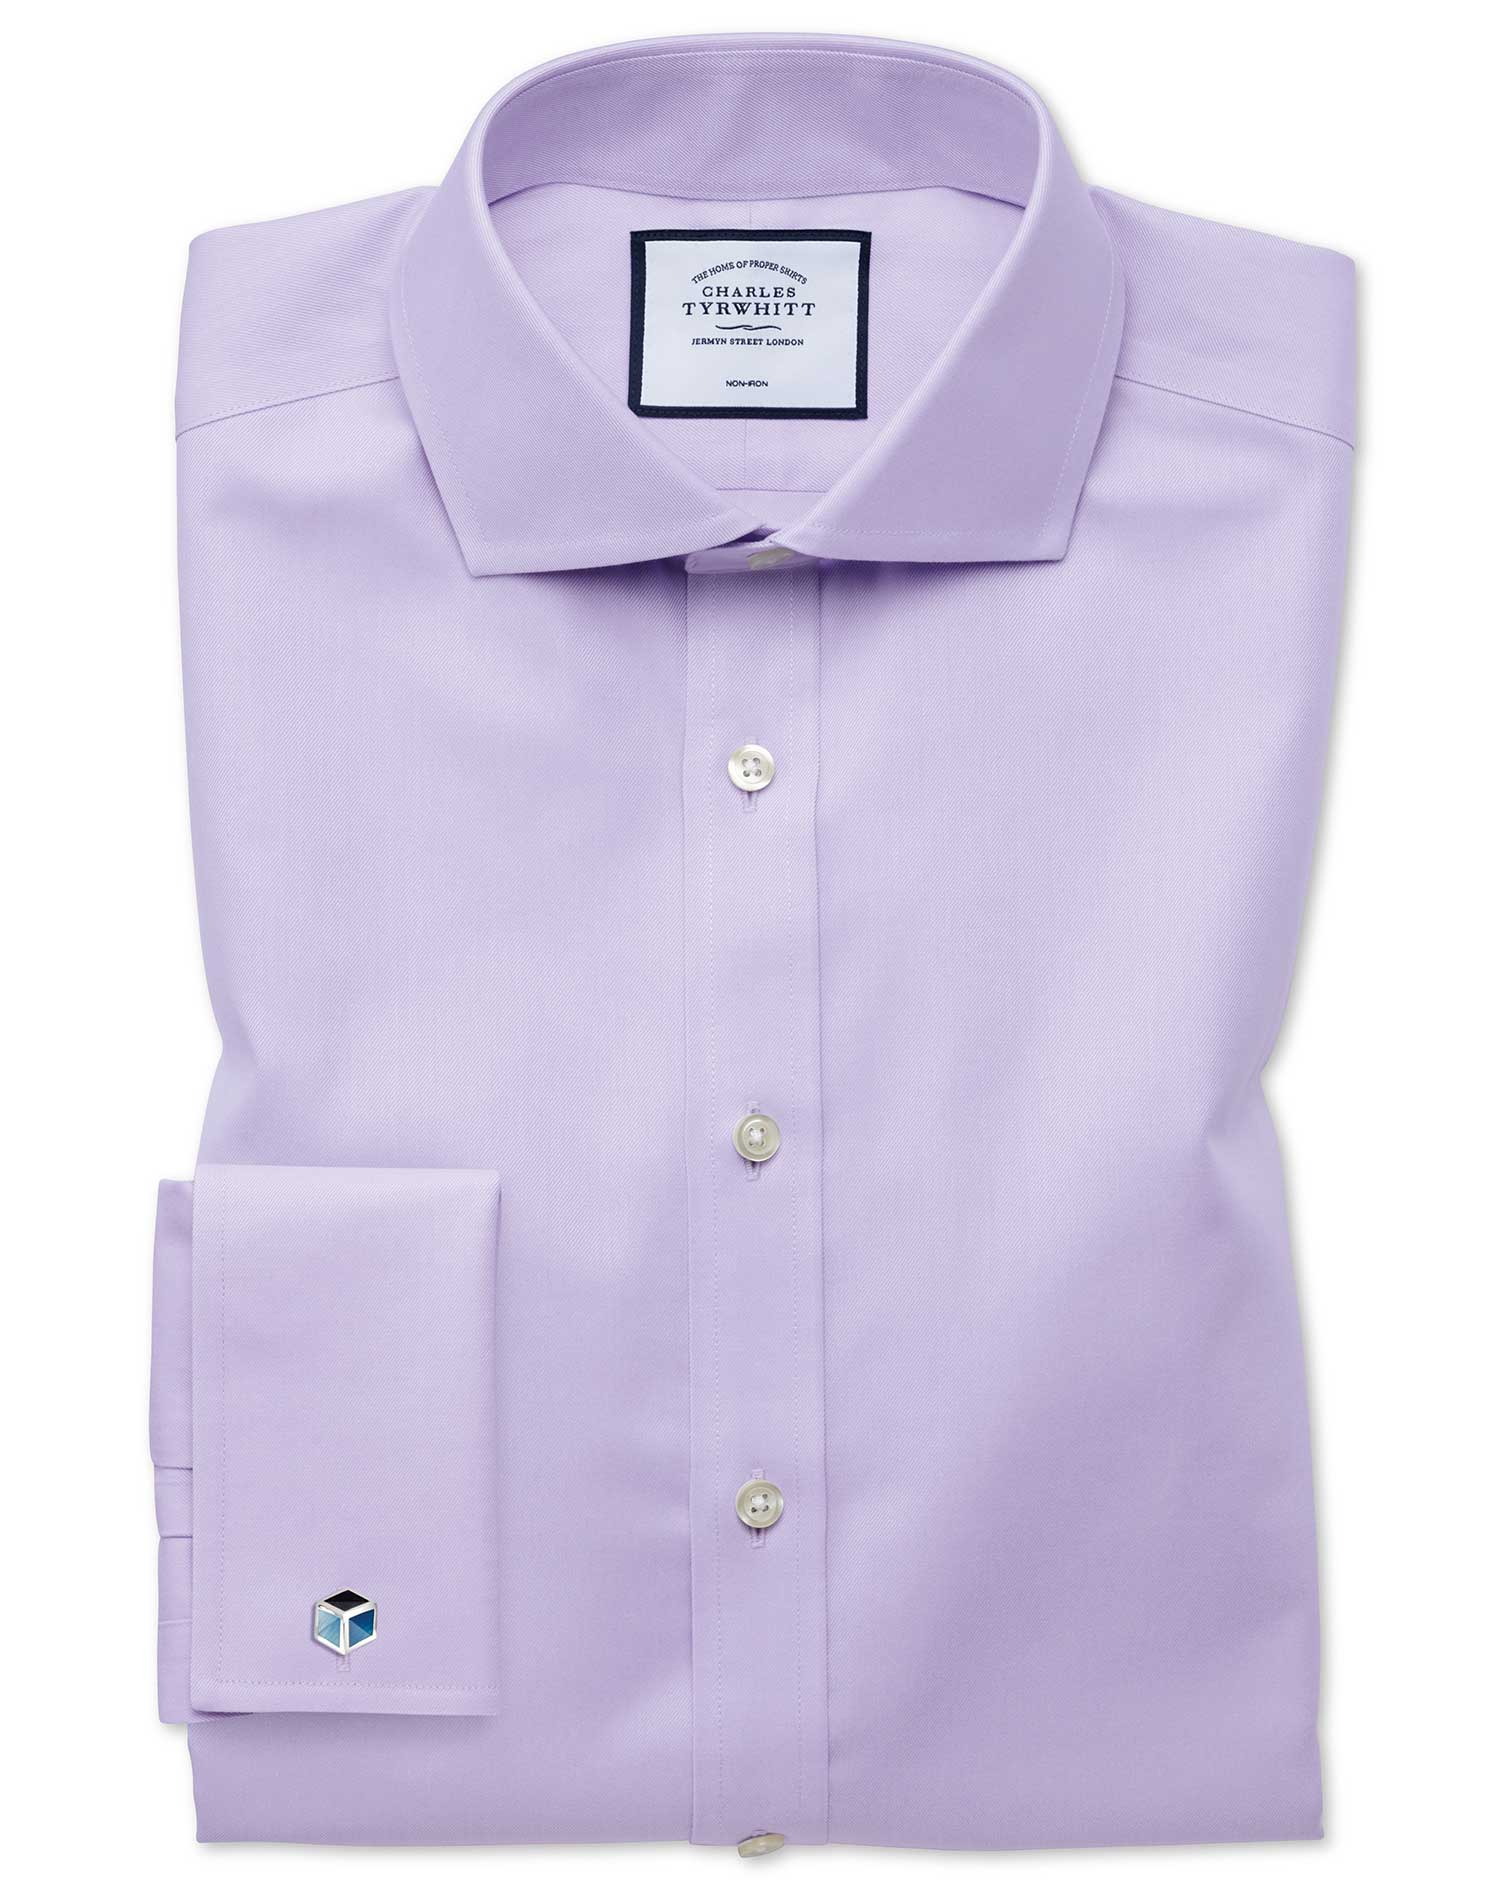 Extra Slim Fit Non-Iron Twill Lilac Cotton Formal Shirt Double Cuff Size 16.5/36 by Charles Tyrwhitt